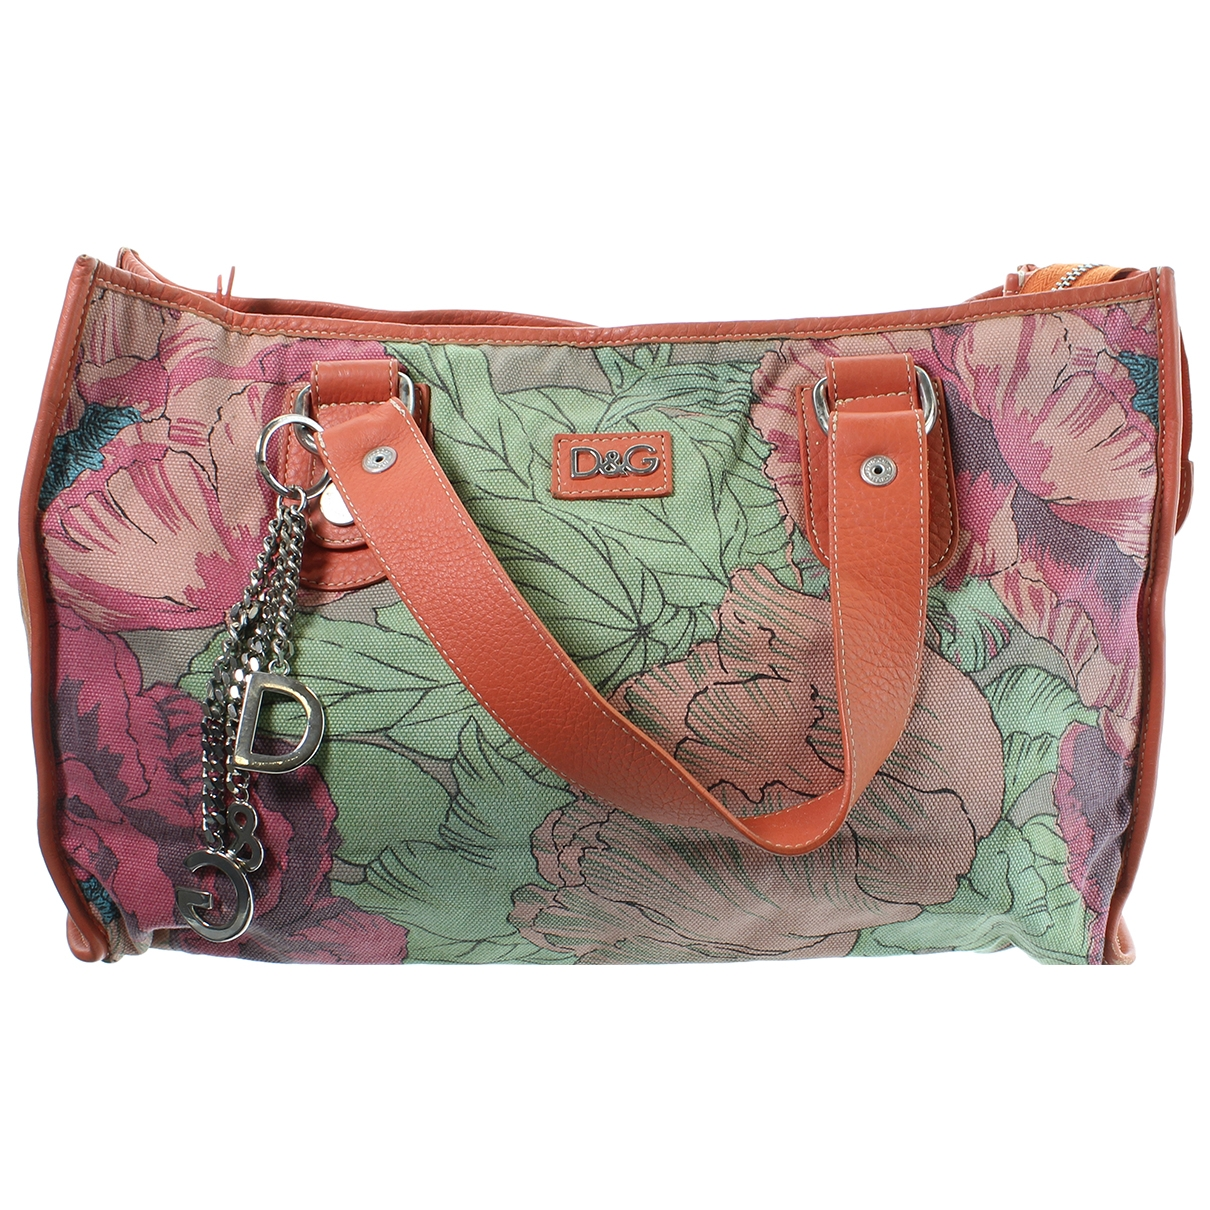 D&g \N Handtasche in  Orange Leinen